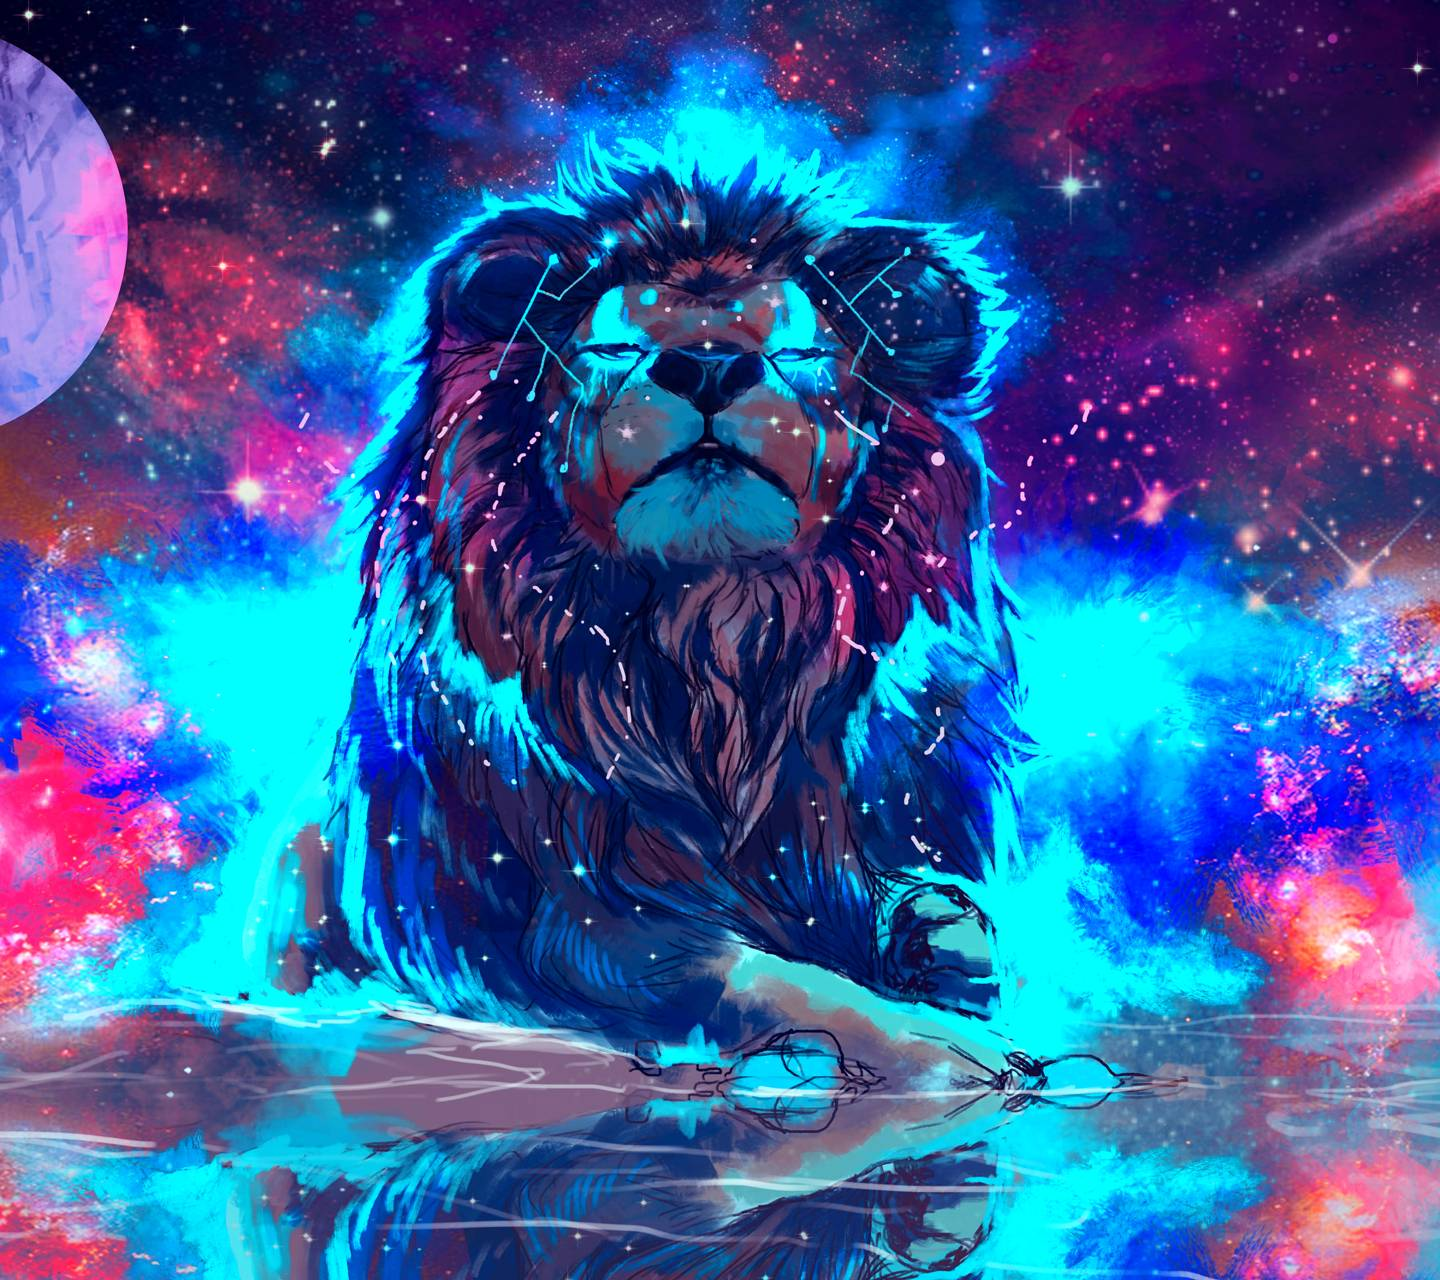 Free By Zedge: Lion Wallpaper By ViBy87